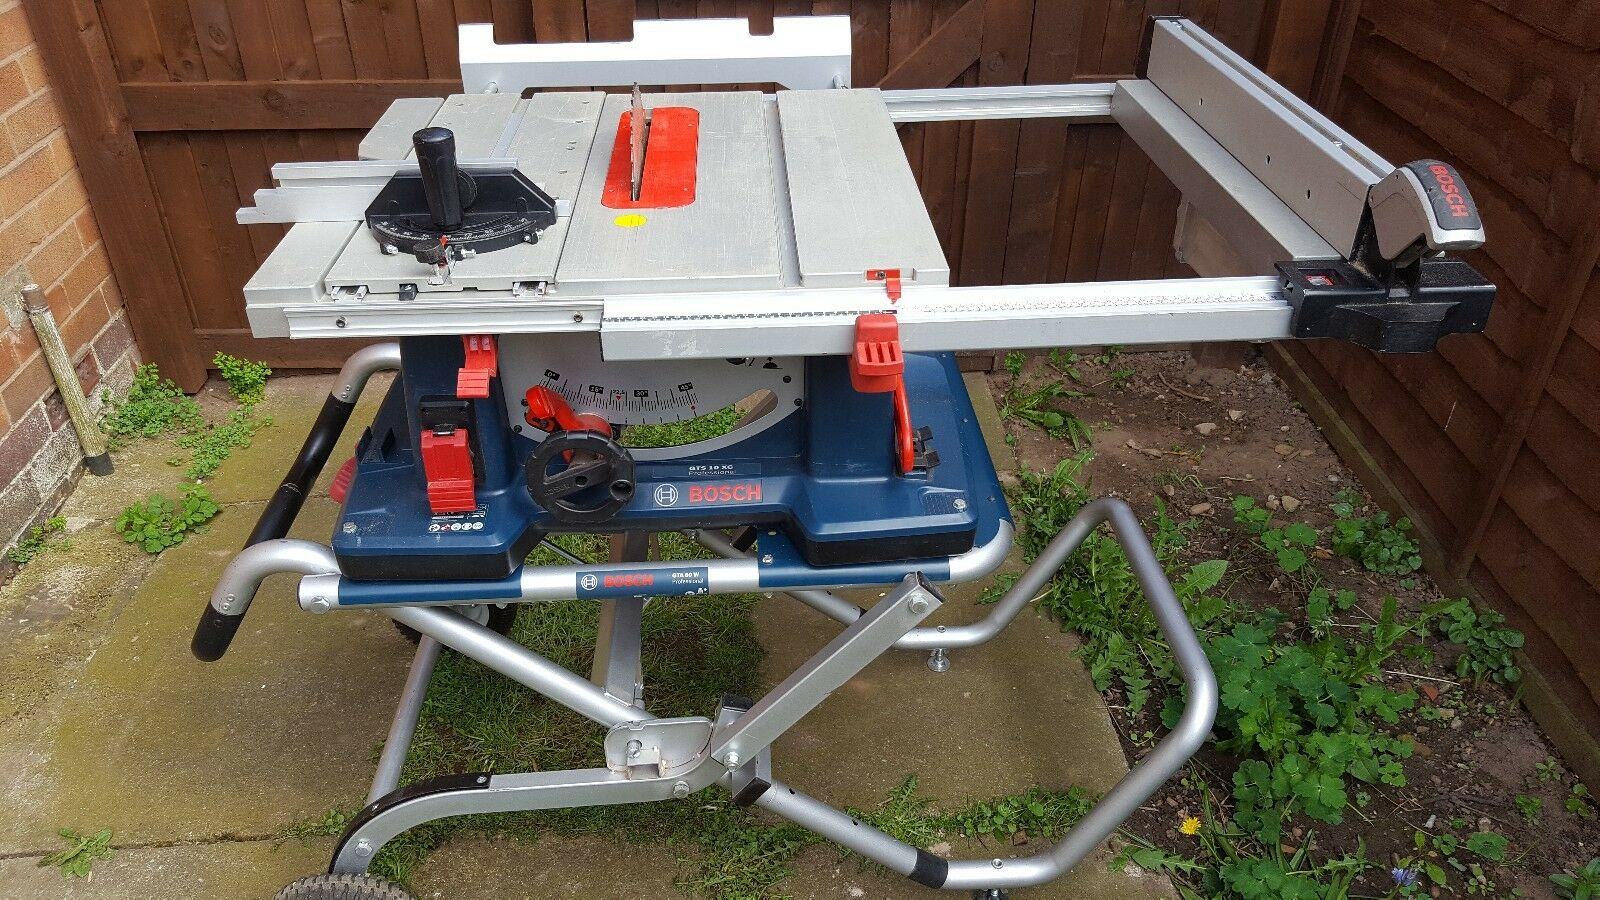 Bosch gts 10xc 10 table saw gta 60 w table saw stand and router 1 of 10free shipping greentooth Image collections